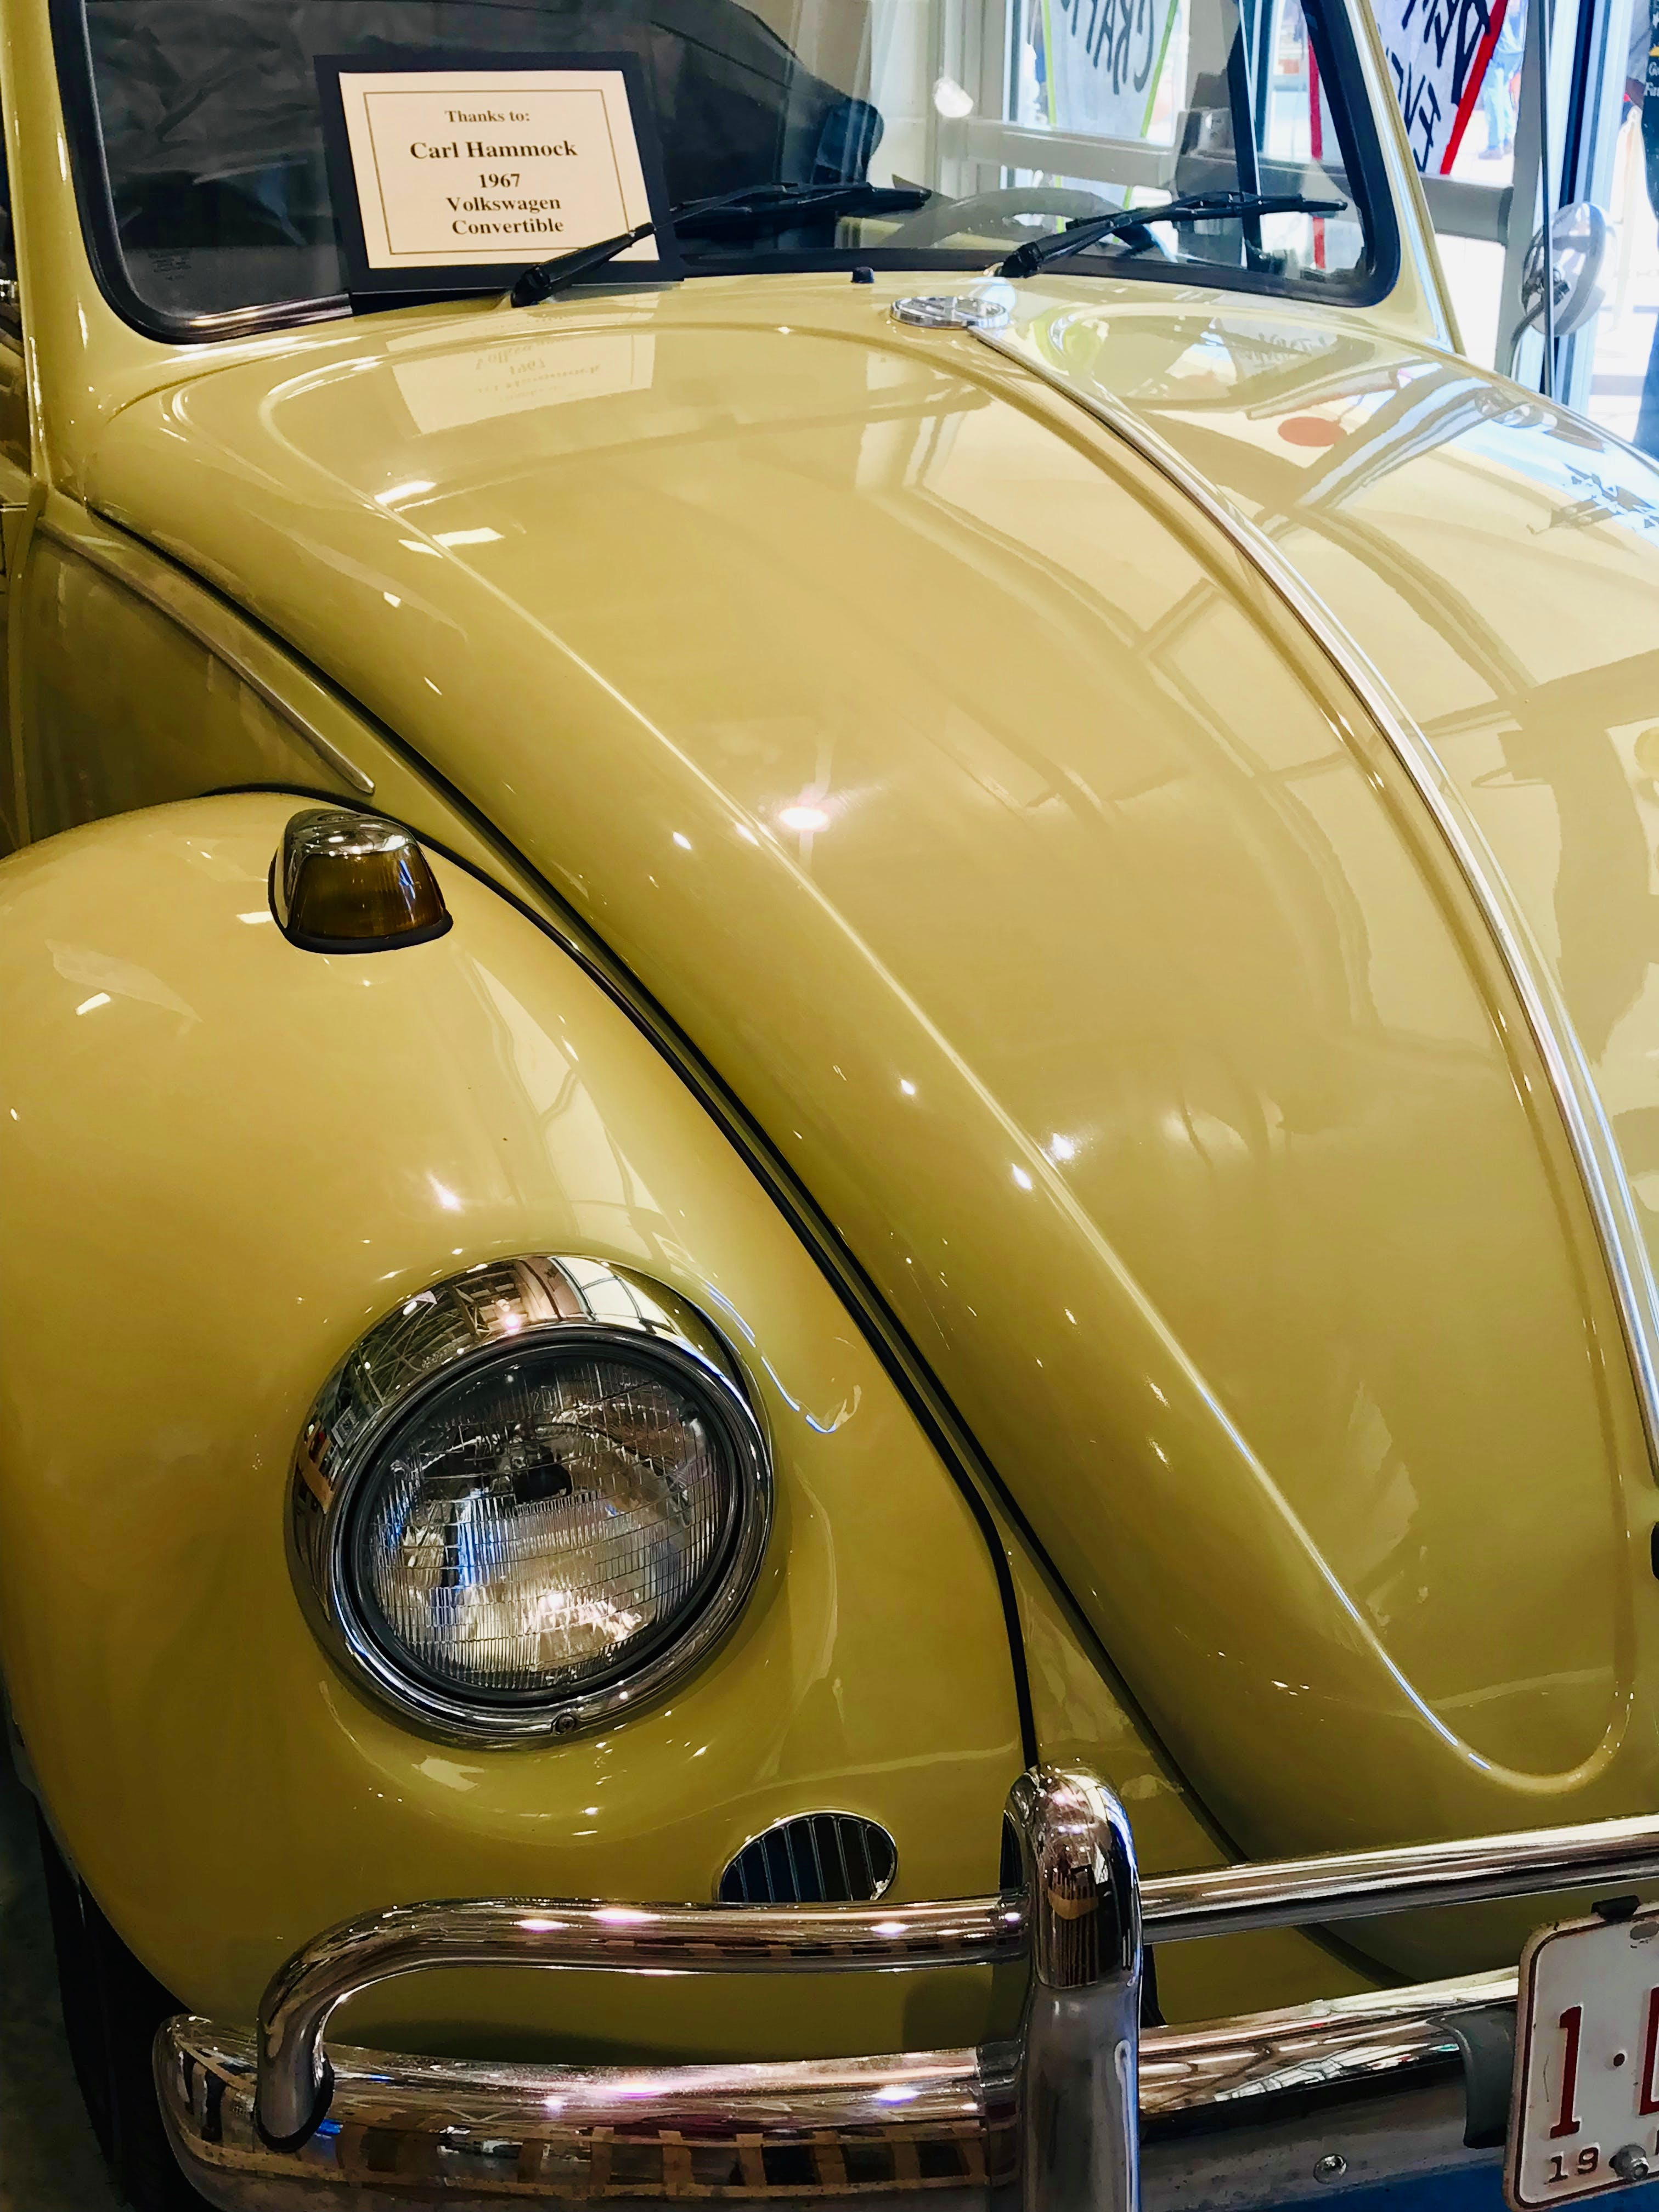 Free stock photo of car show, vintage car, Volkswagen Beetle, yellow